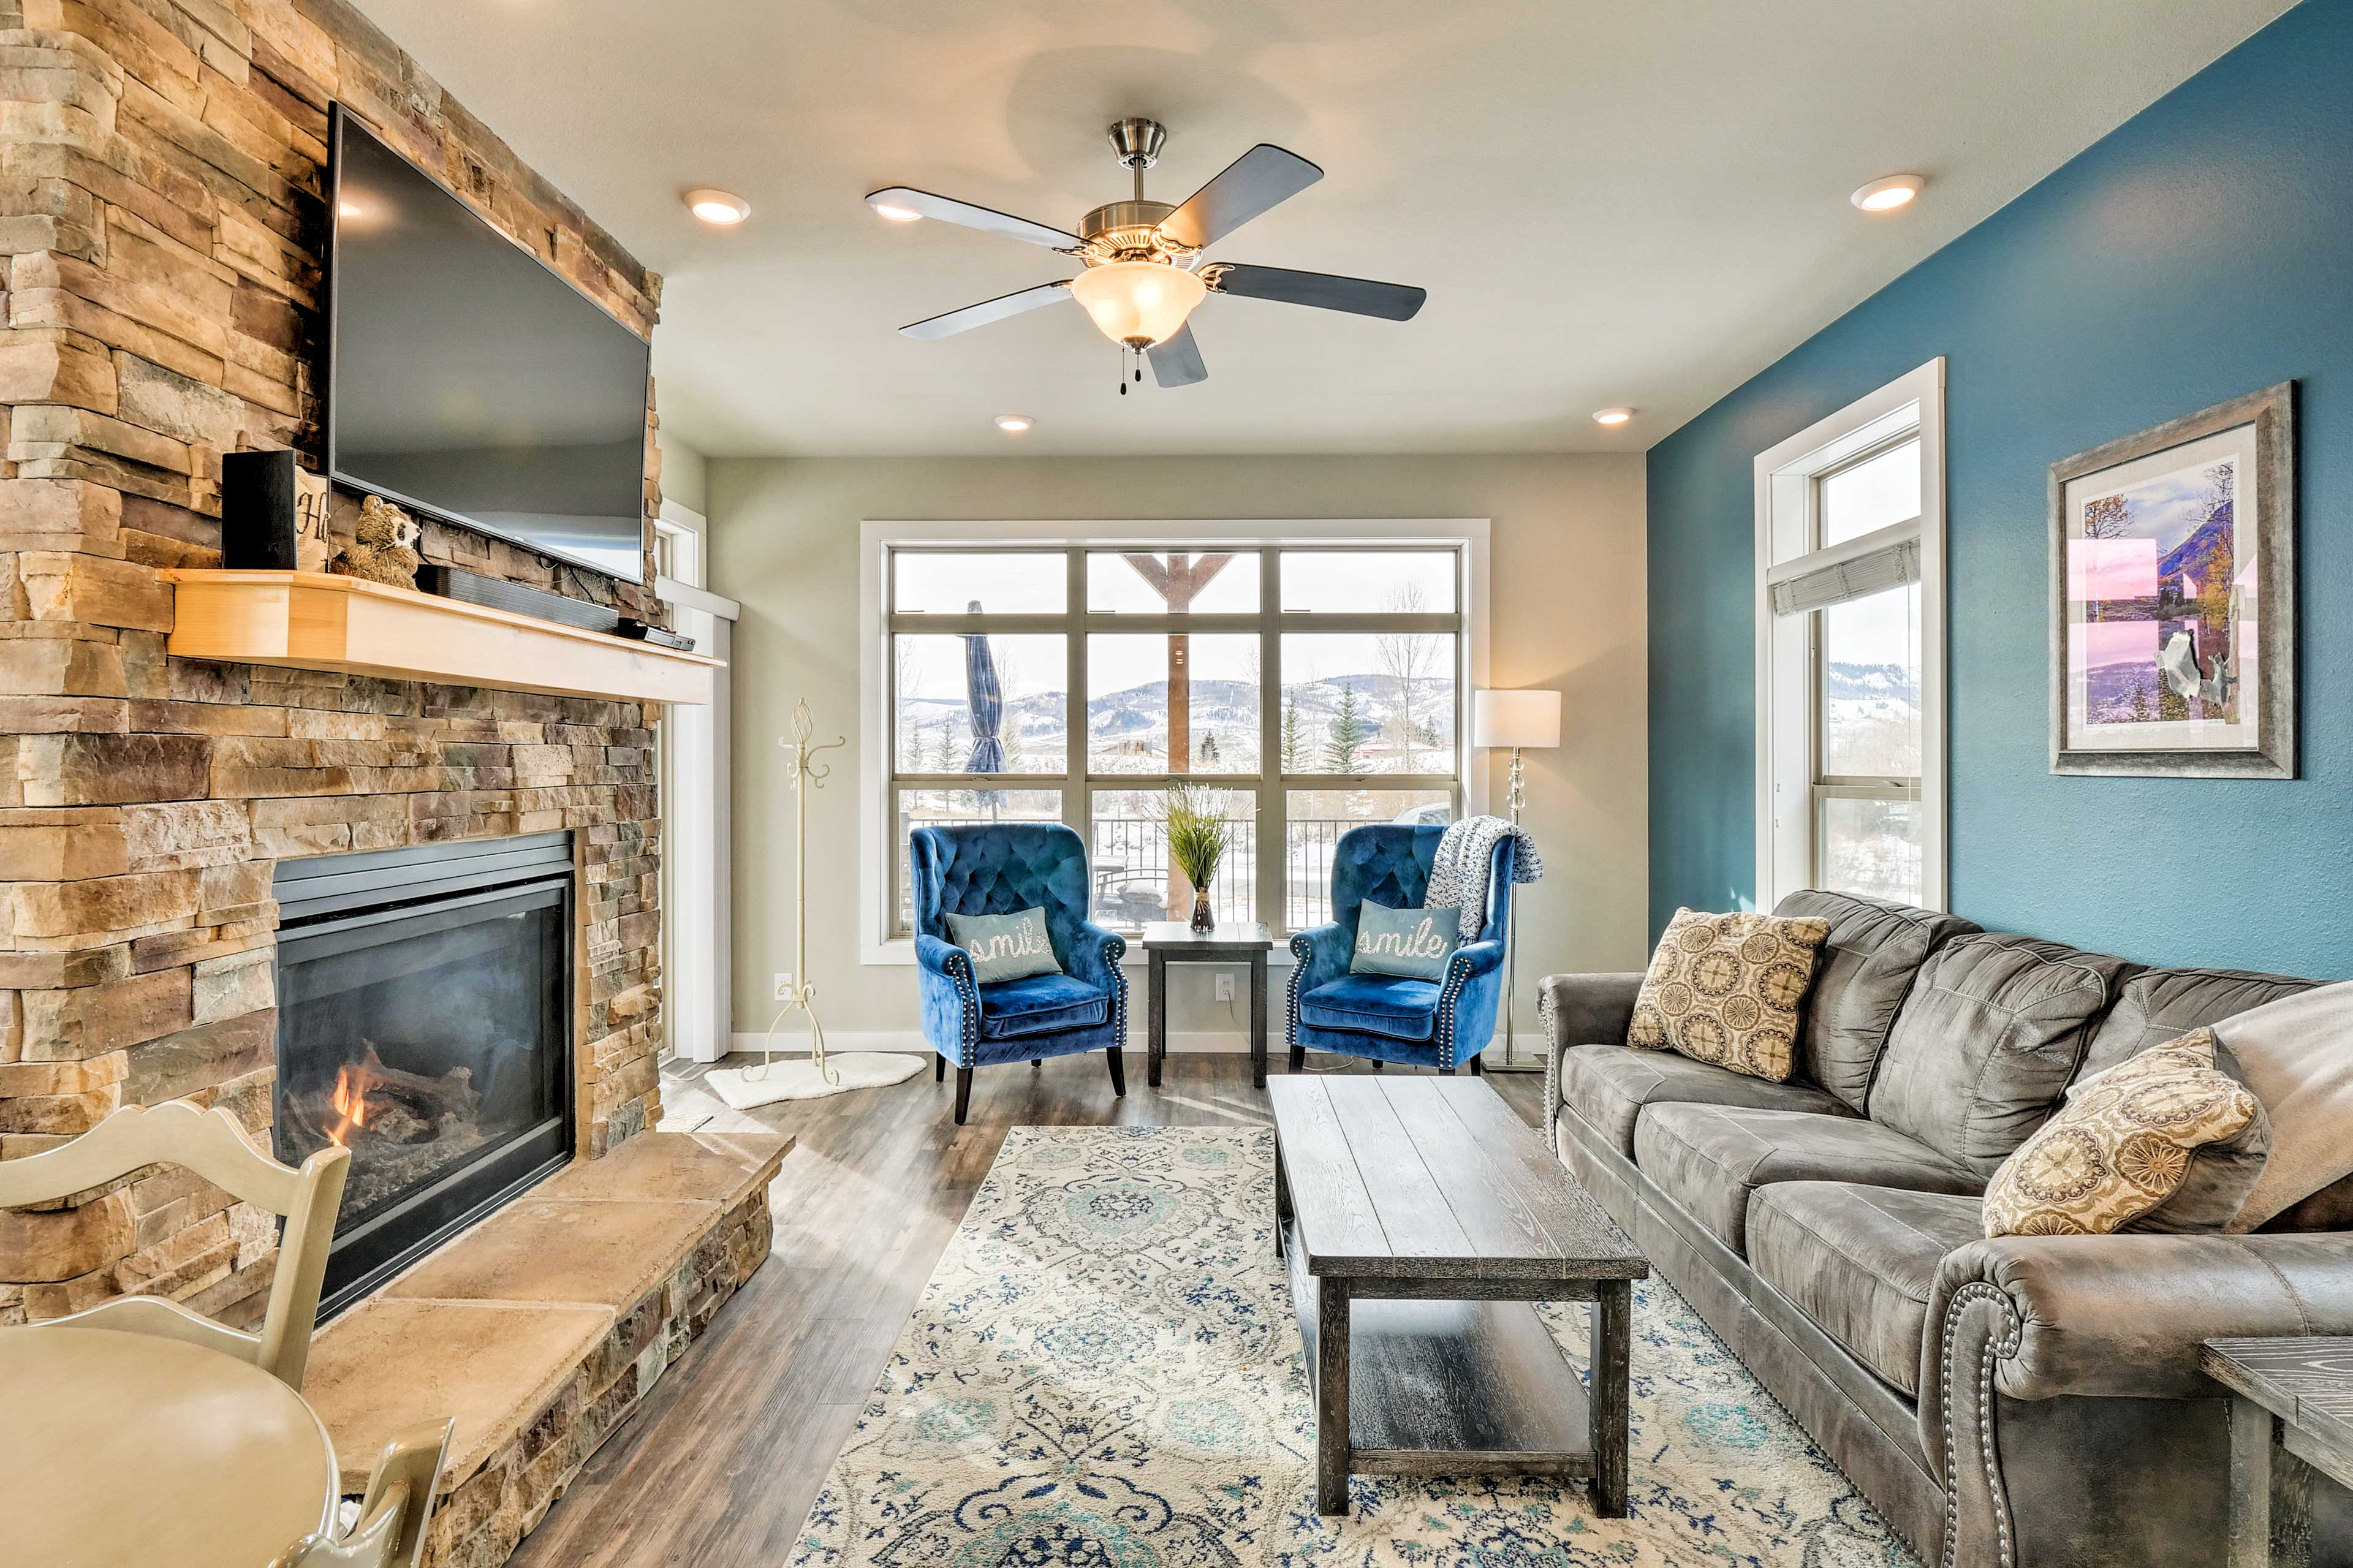 The living room features a gas fireplace and flat-screen TV.